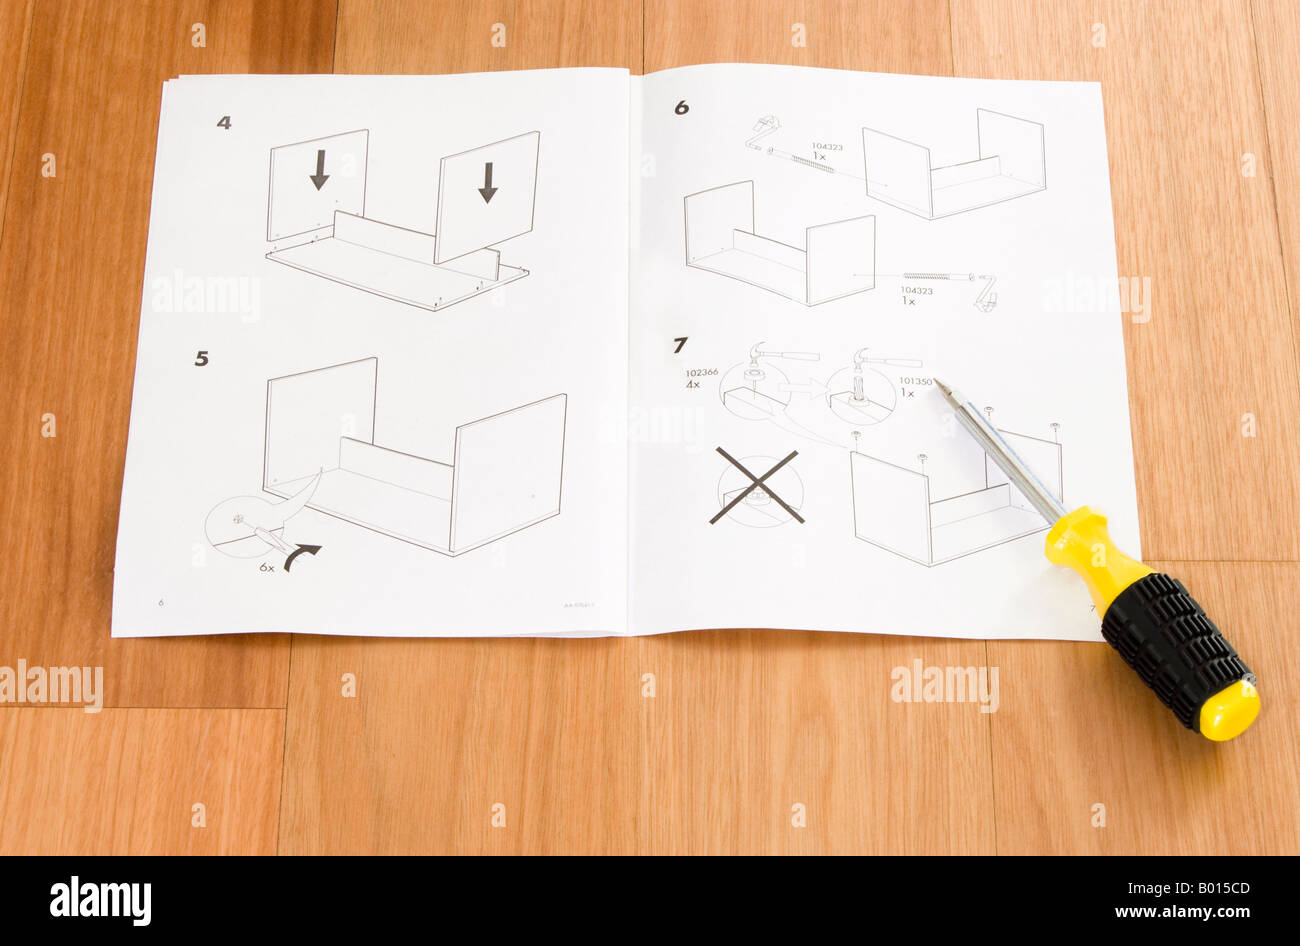 Self Assembly Ikea Furniture Instructions And Screwdriver